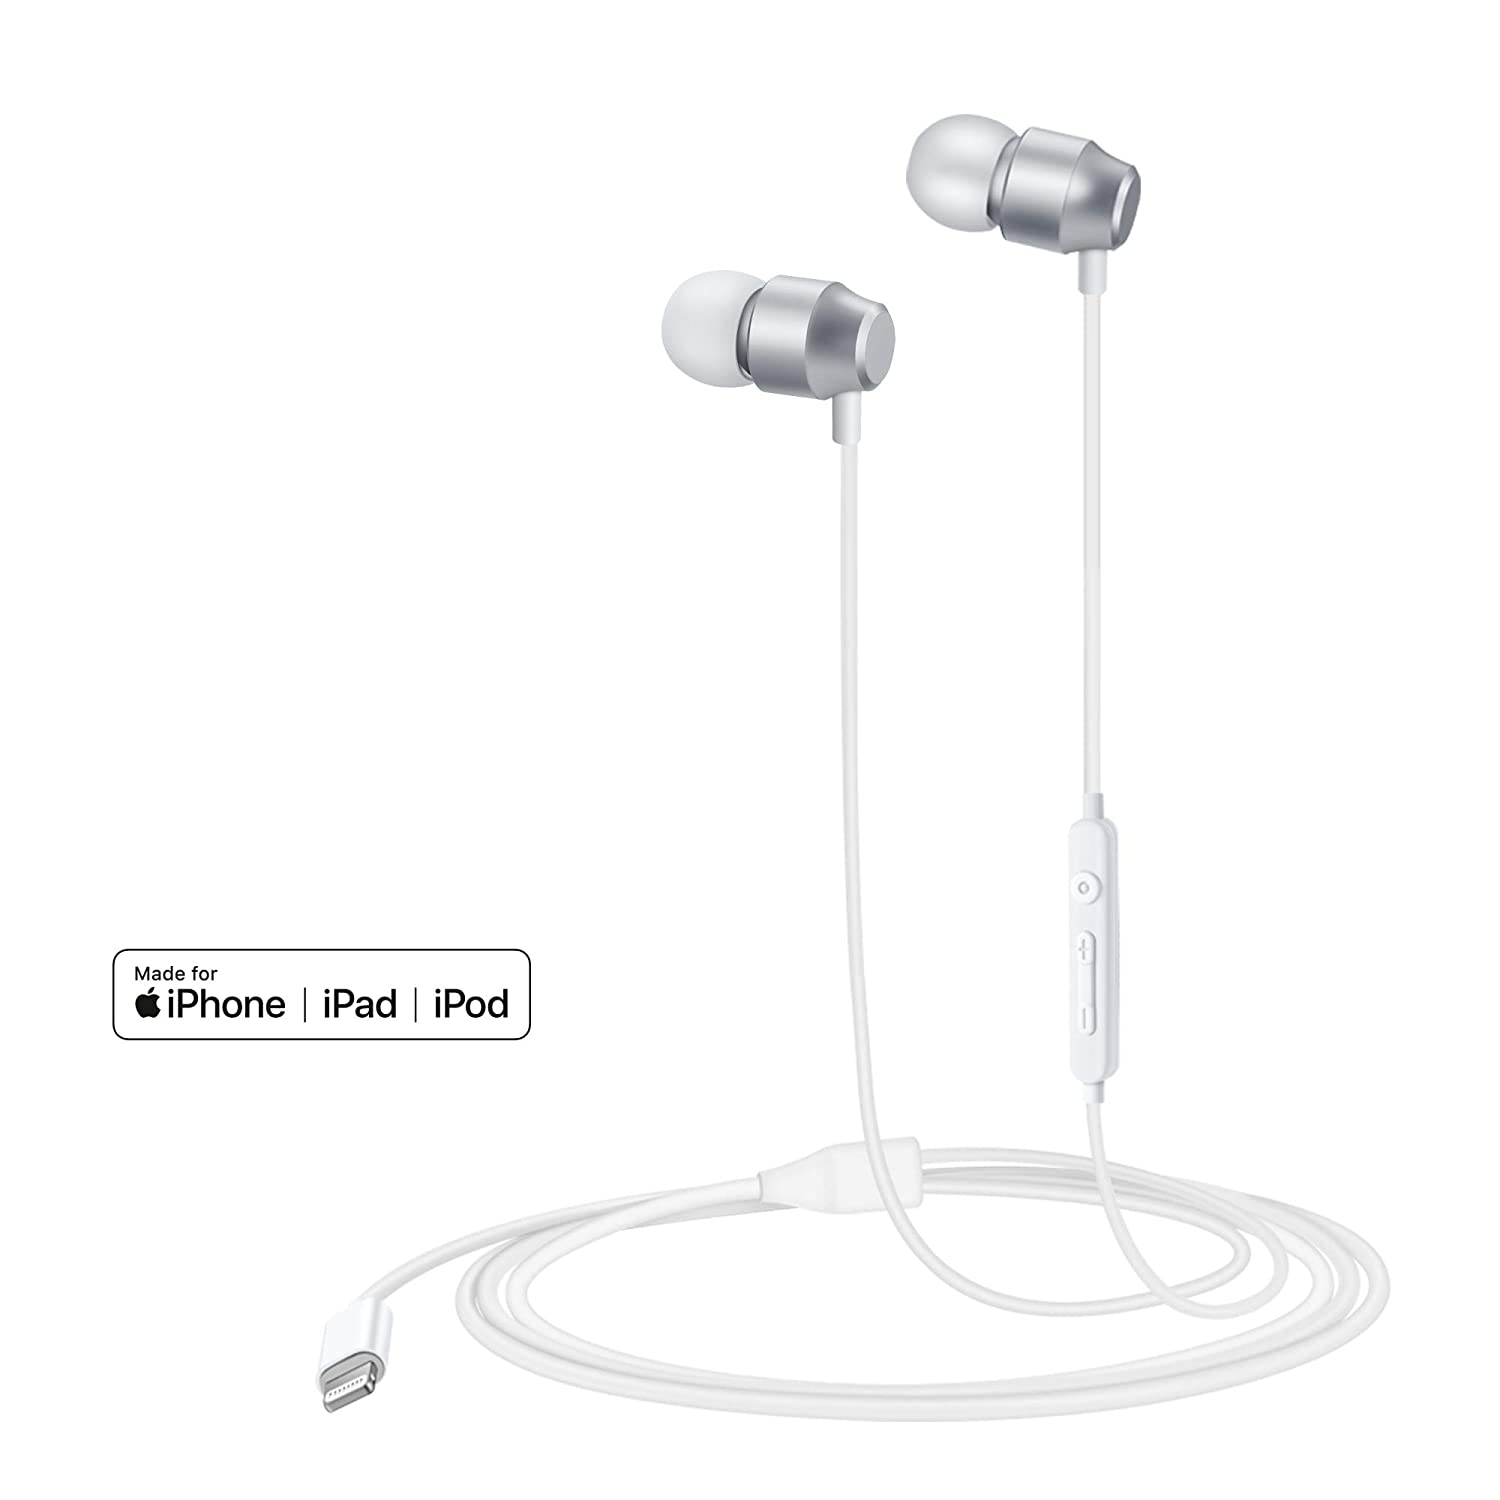 PALOVUE Earflow in-Ear Lightning Headphone Magnetic Earphone MFi Certified Earbuds with Microphone Controller for iPhone X iPhone 8/P iPhone 7/P (Mettalic Silver)